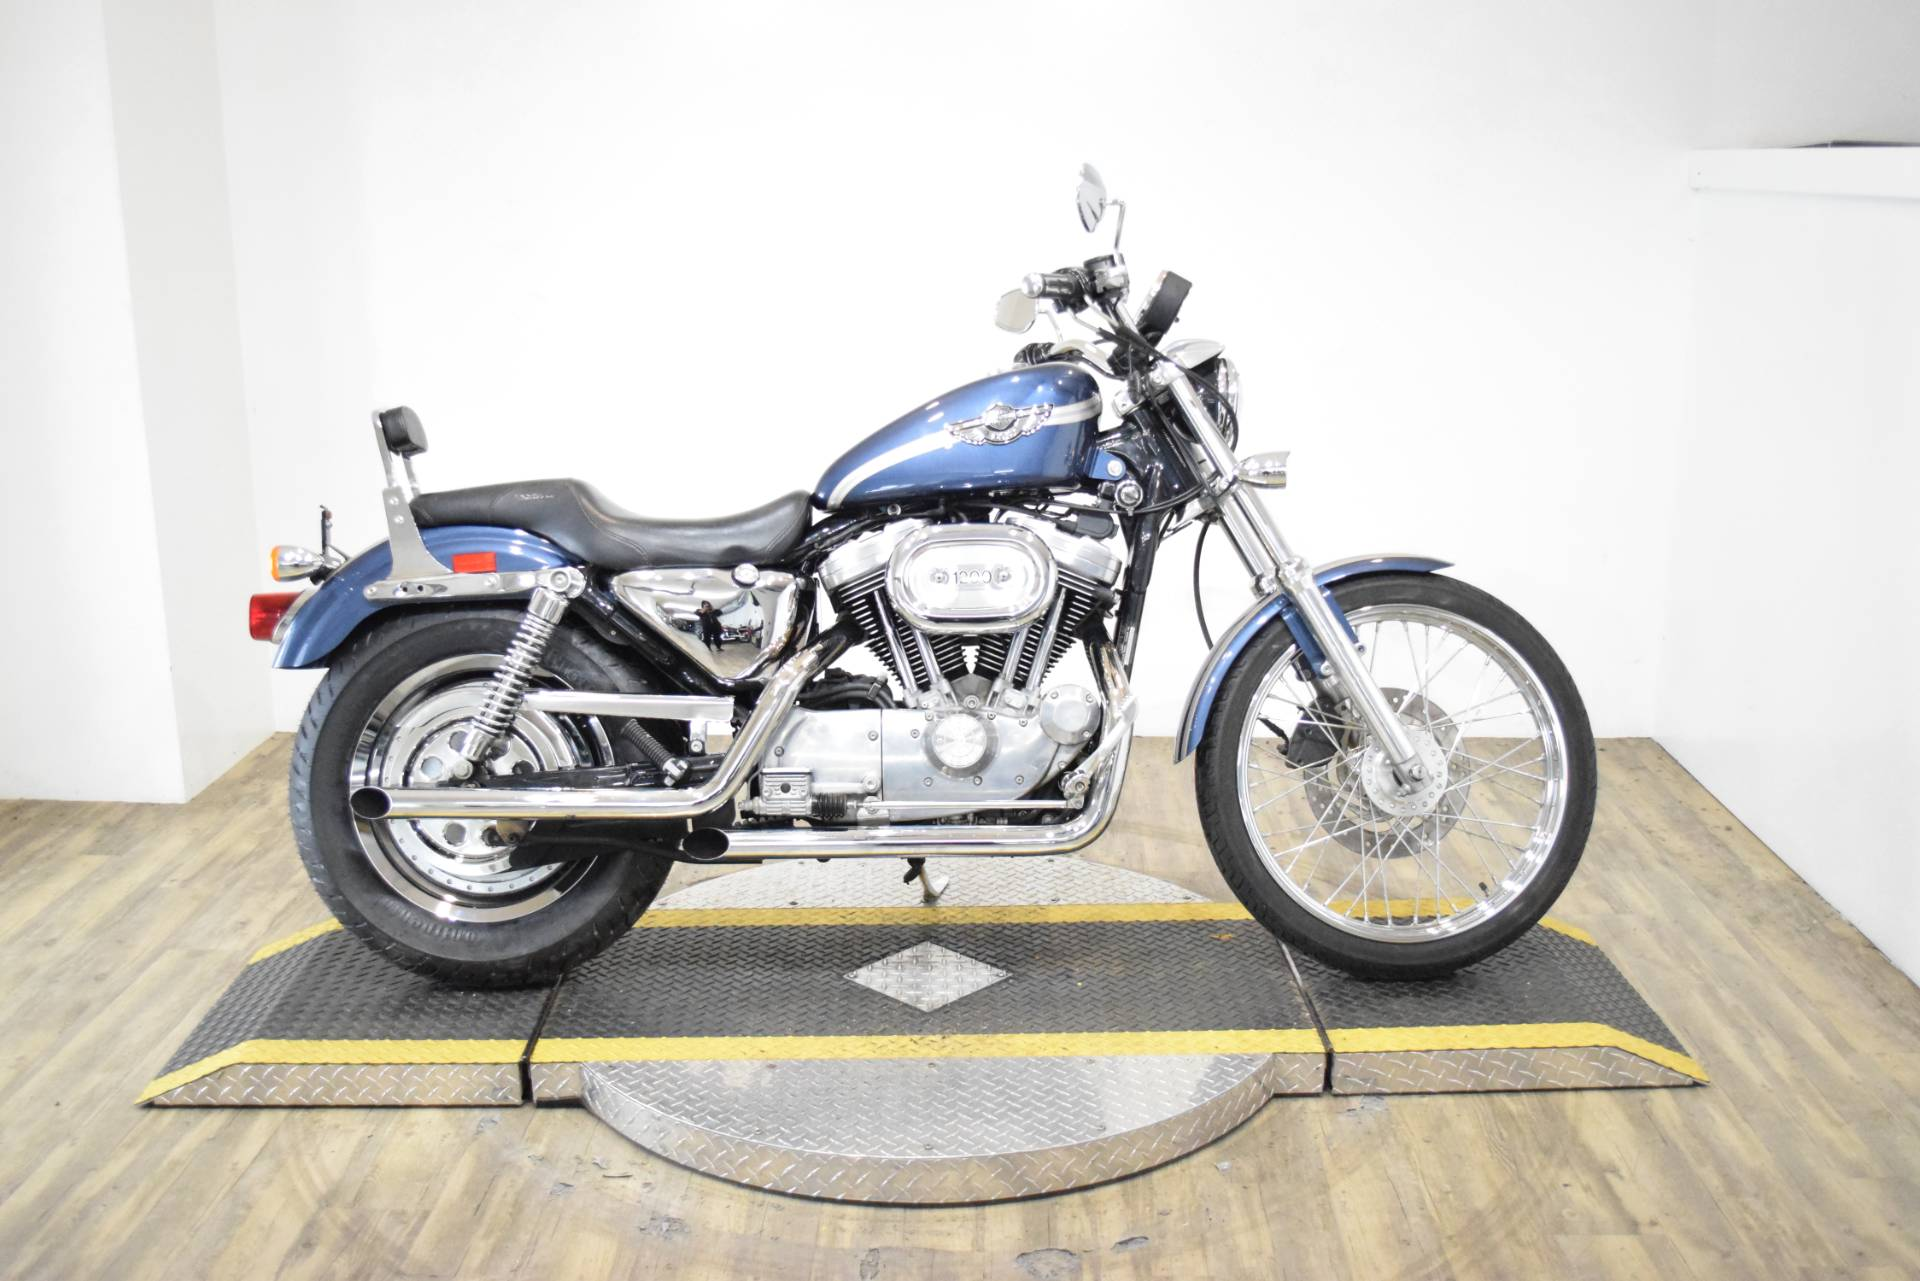 2003 Harley-Davidson XL 1200C Sportster® 1200 Custom in Wauconda, Illinois - Photo 1